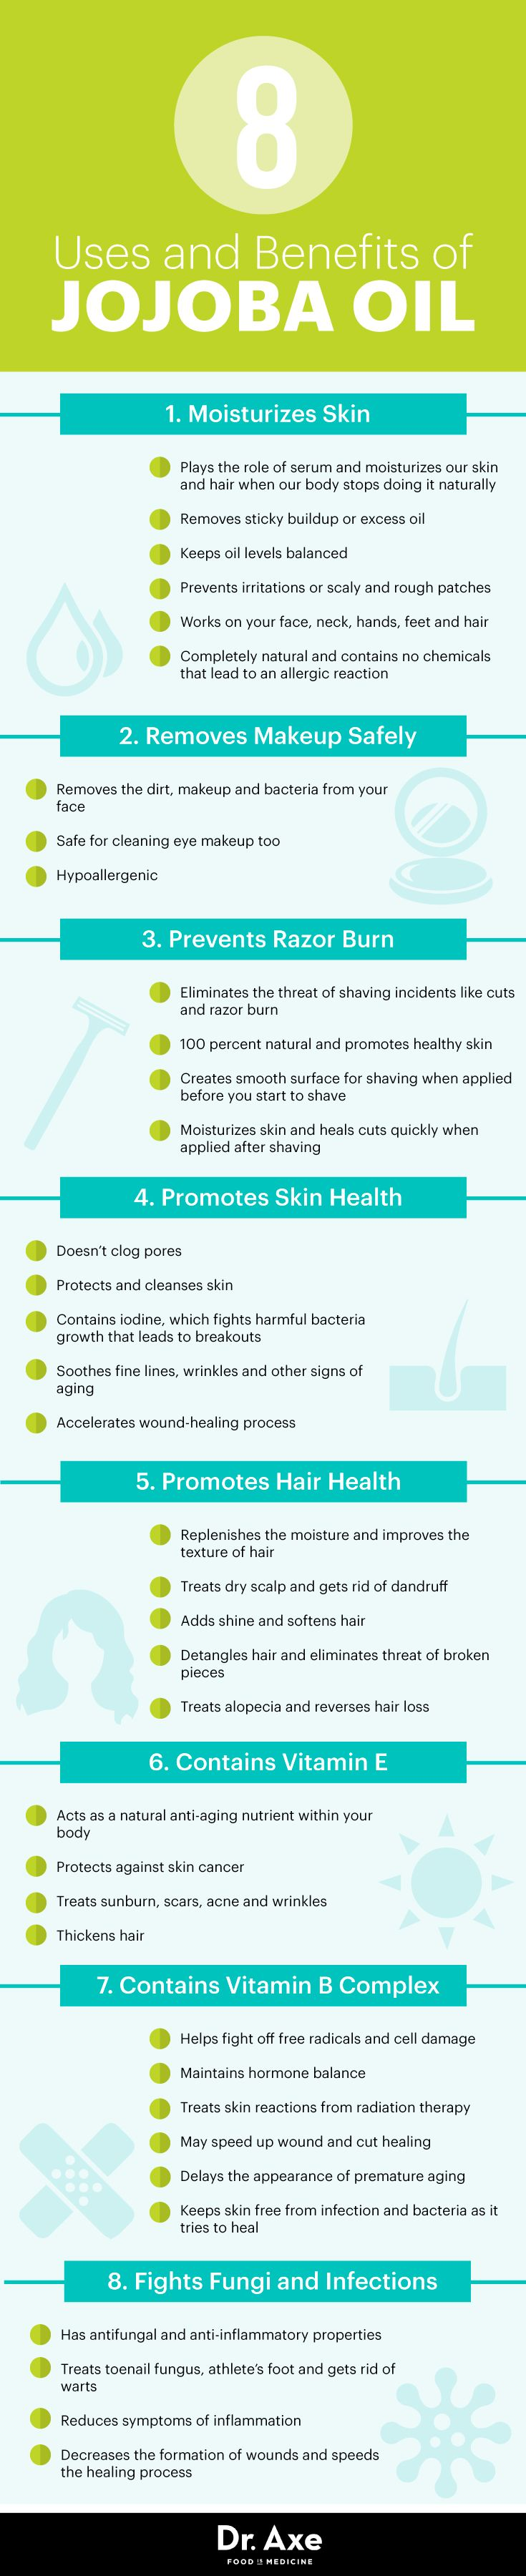 Jojoba Oil: Best Natural Remedy For Perfect Skin Infographic